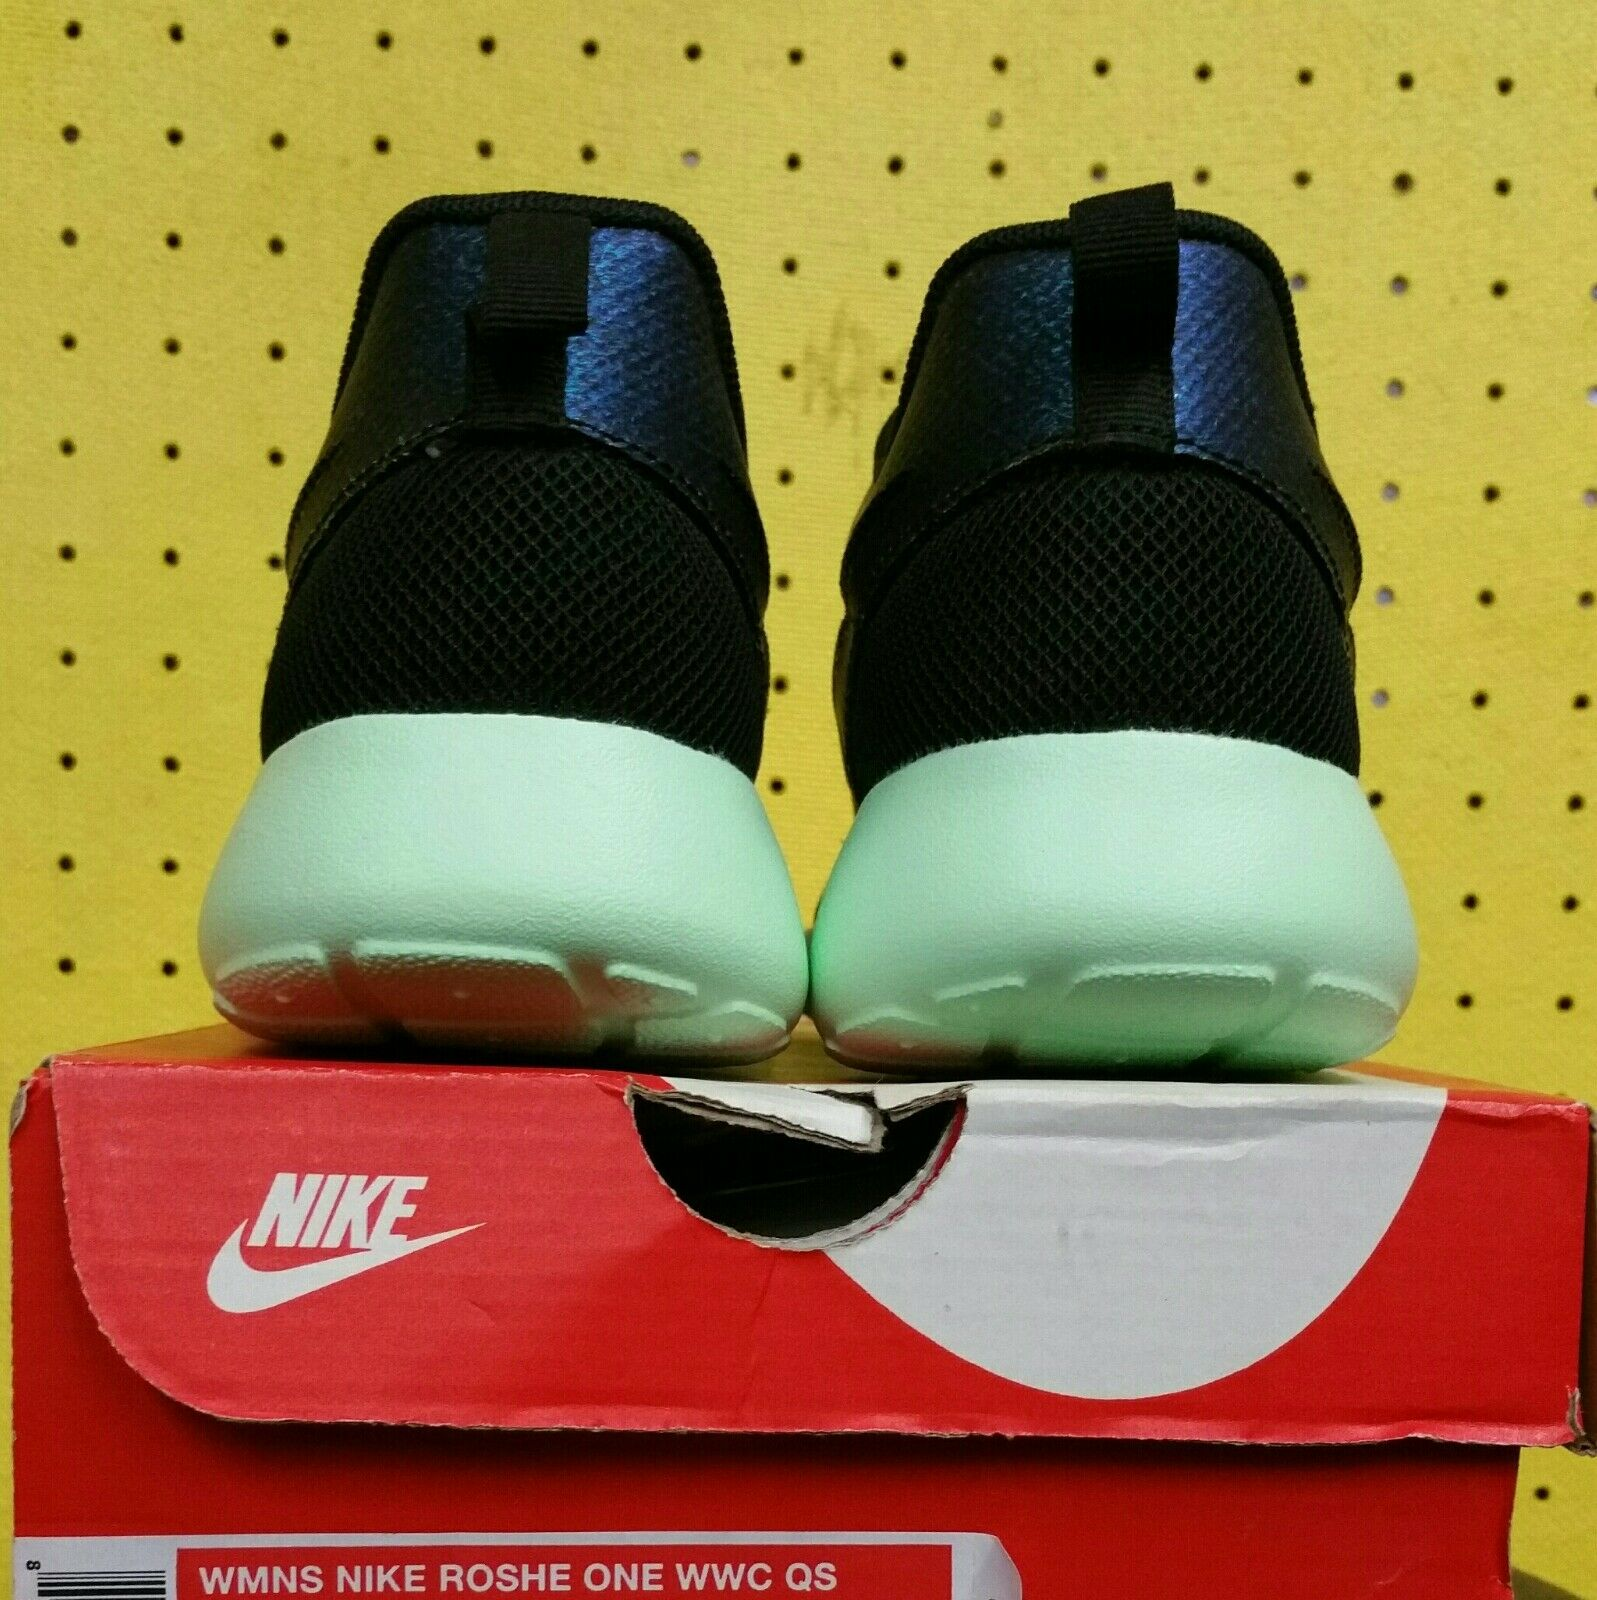 premium selection 5552c a2377 ... NEW Womens Nike Nike Nike Roshe One WWC QS Shoes Teal Vapor Green Sz  5.5 808708 ...